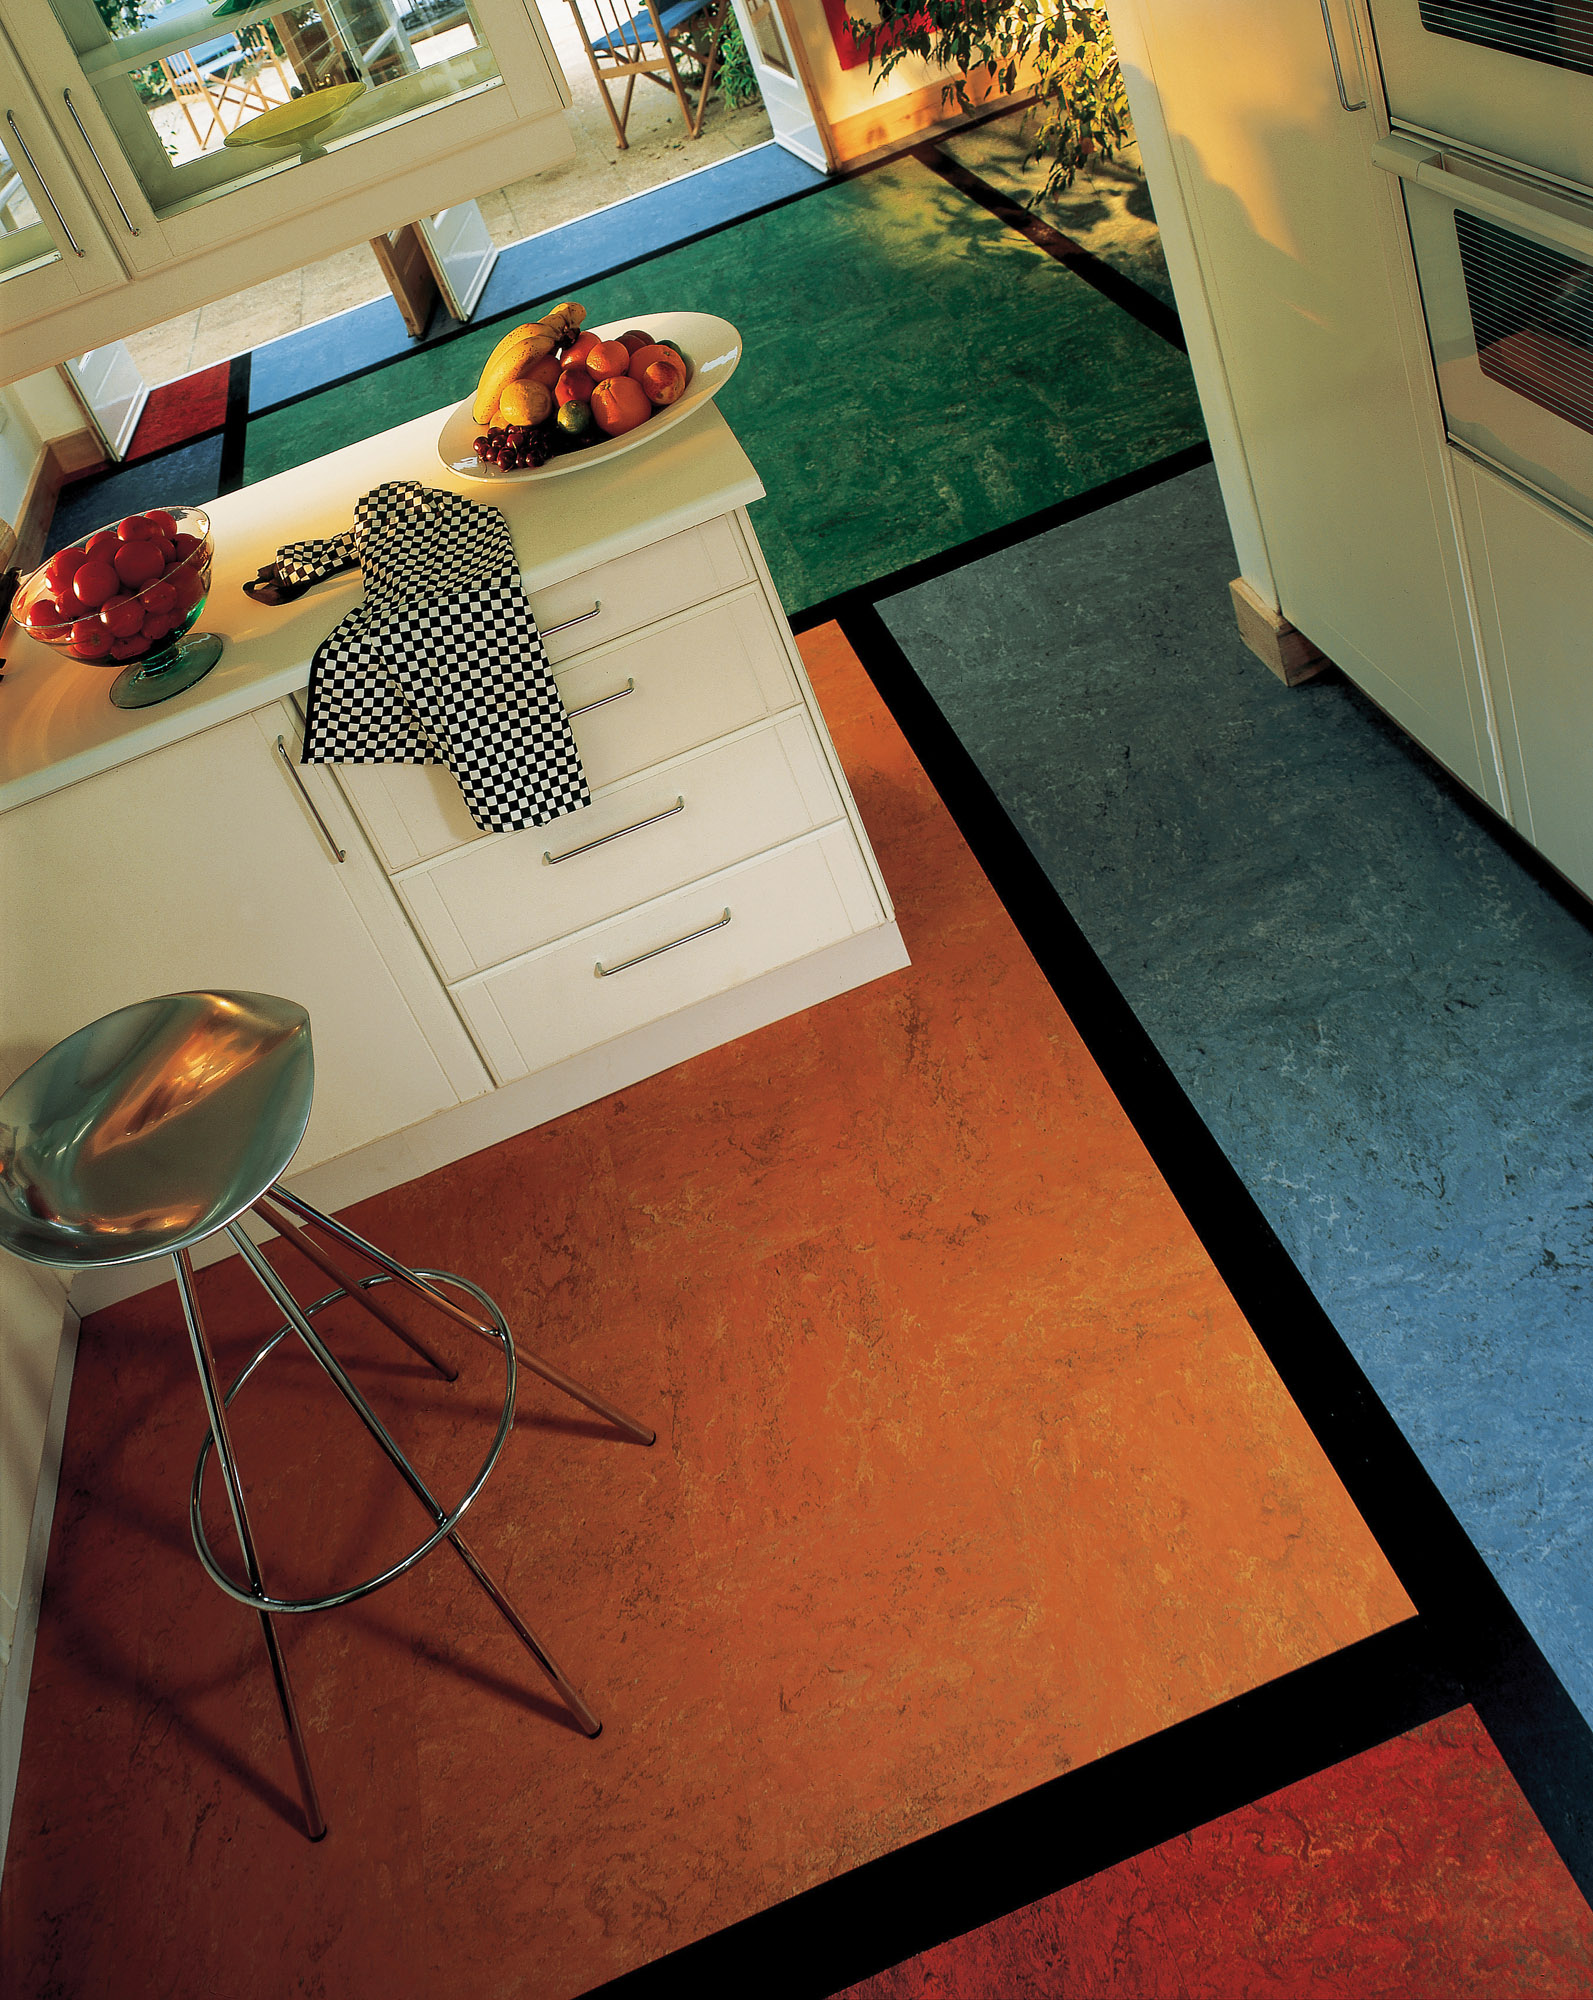 Marmoleum Click. linoleum tiles and sheets come in a broad color spectrum and lend themselves to designs as seen in this color-block floor.